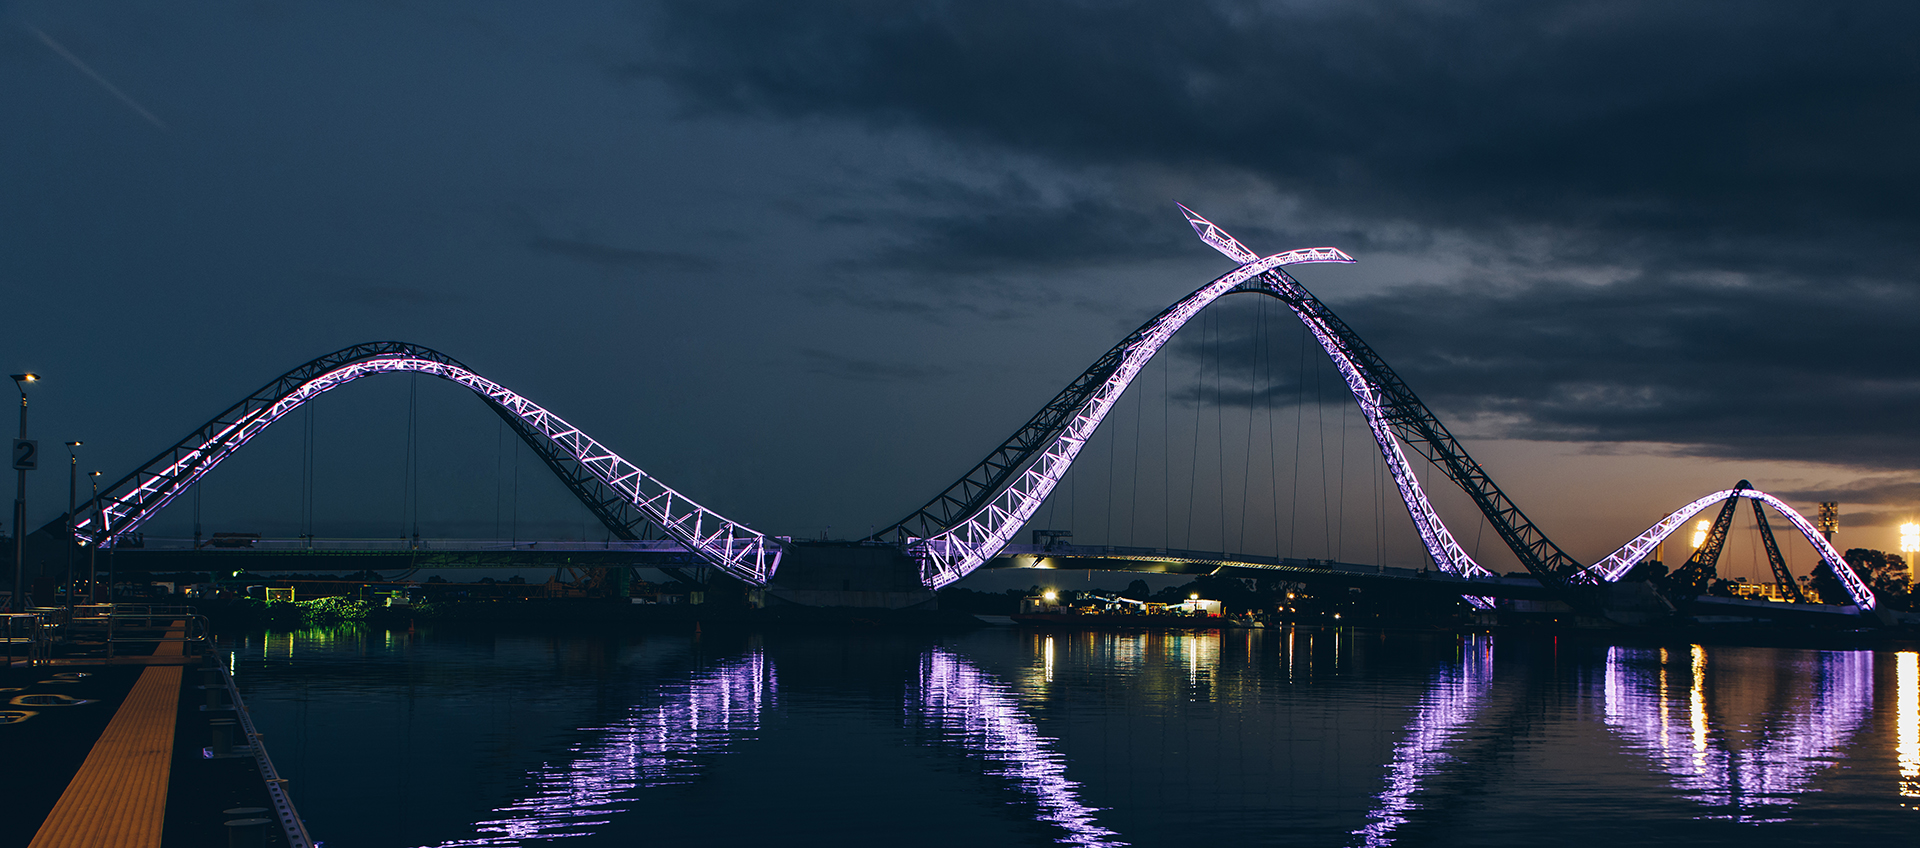 The Matagarup Bridge lit up in purple at night.